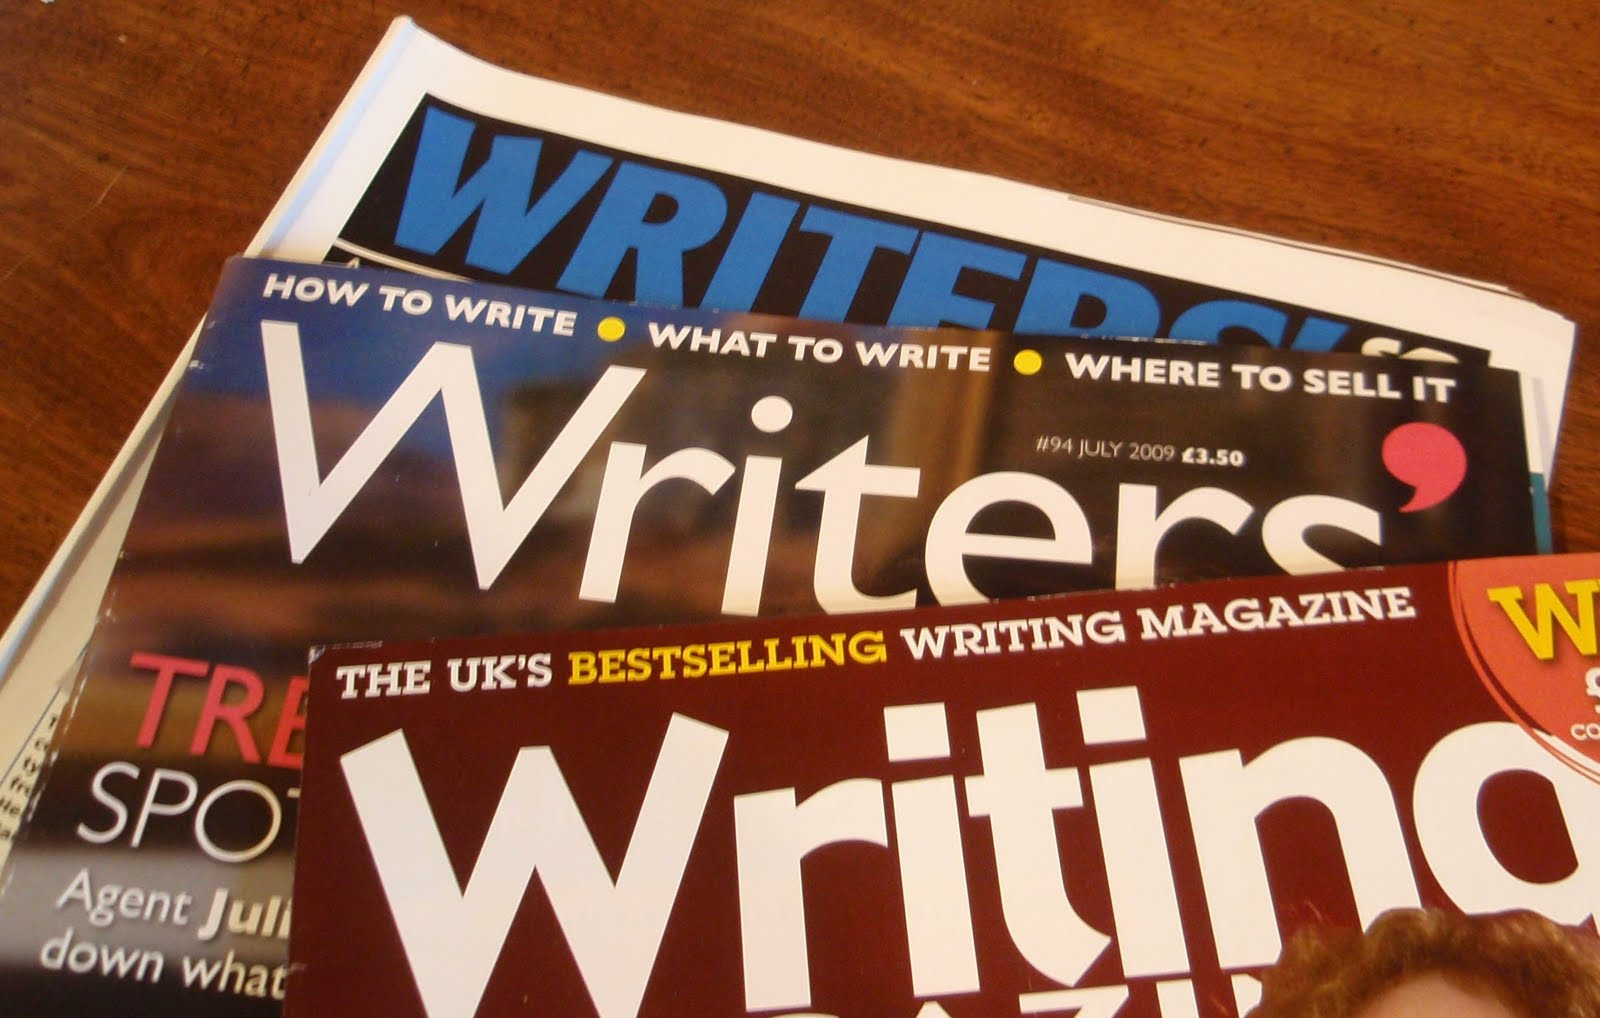 writing magazine lance writing magazines jobs